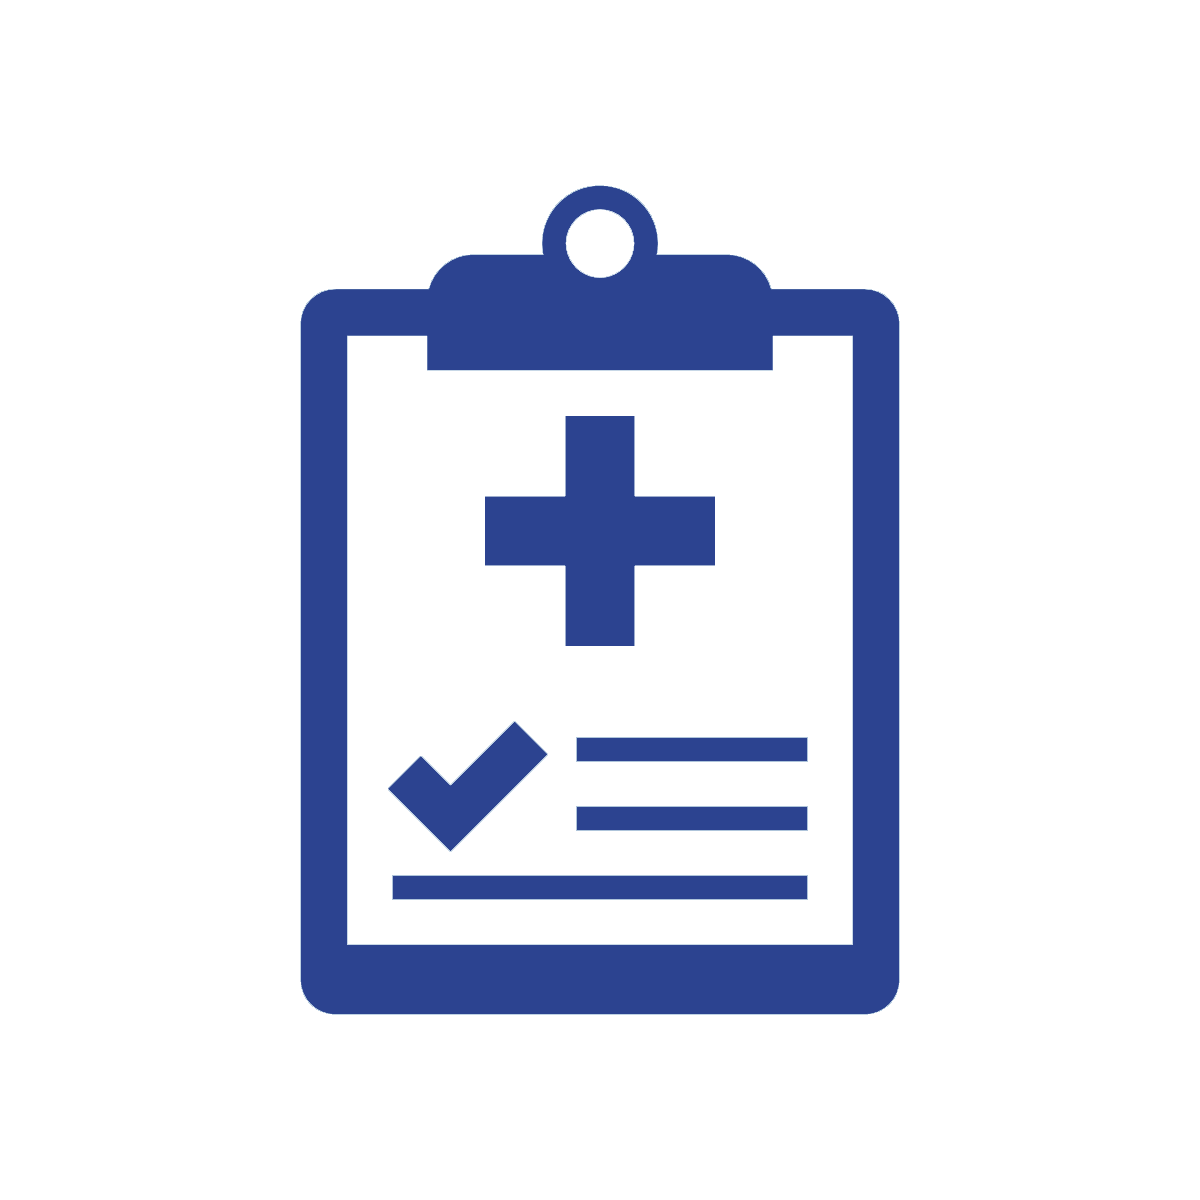 a simplified figure drawing of a medical assessment checklist clipboard